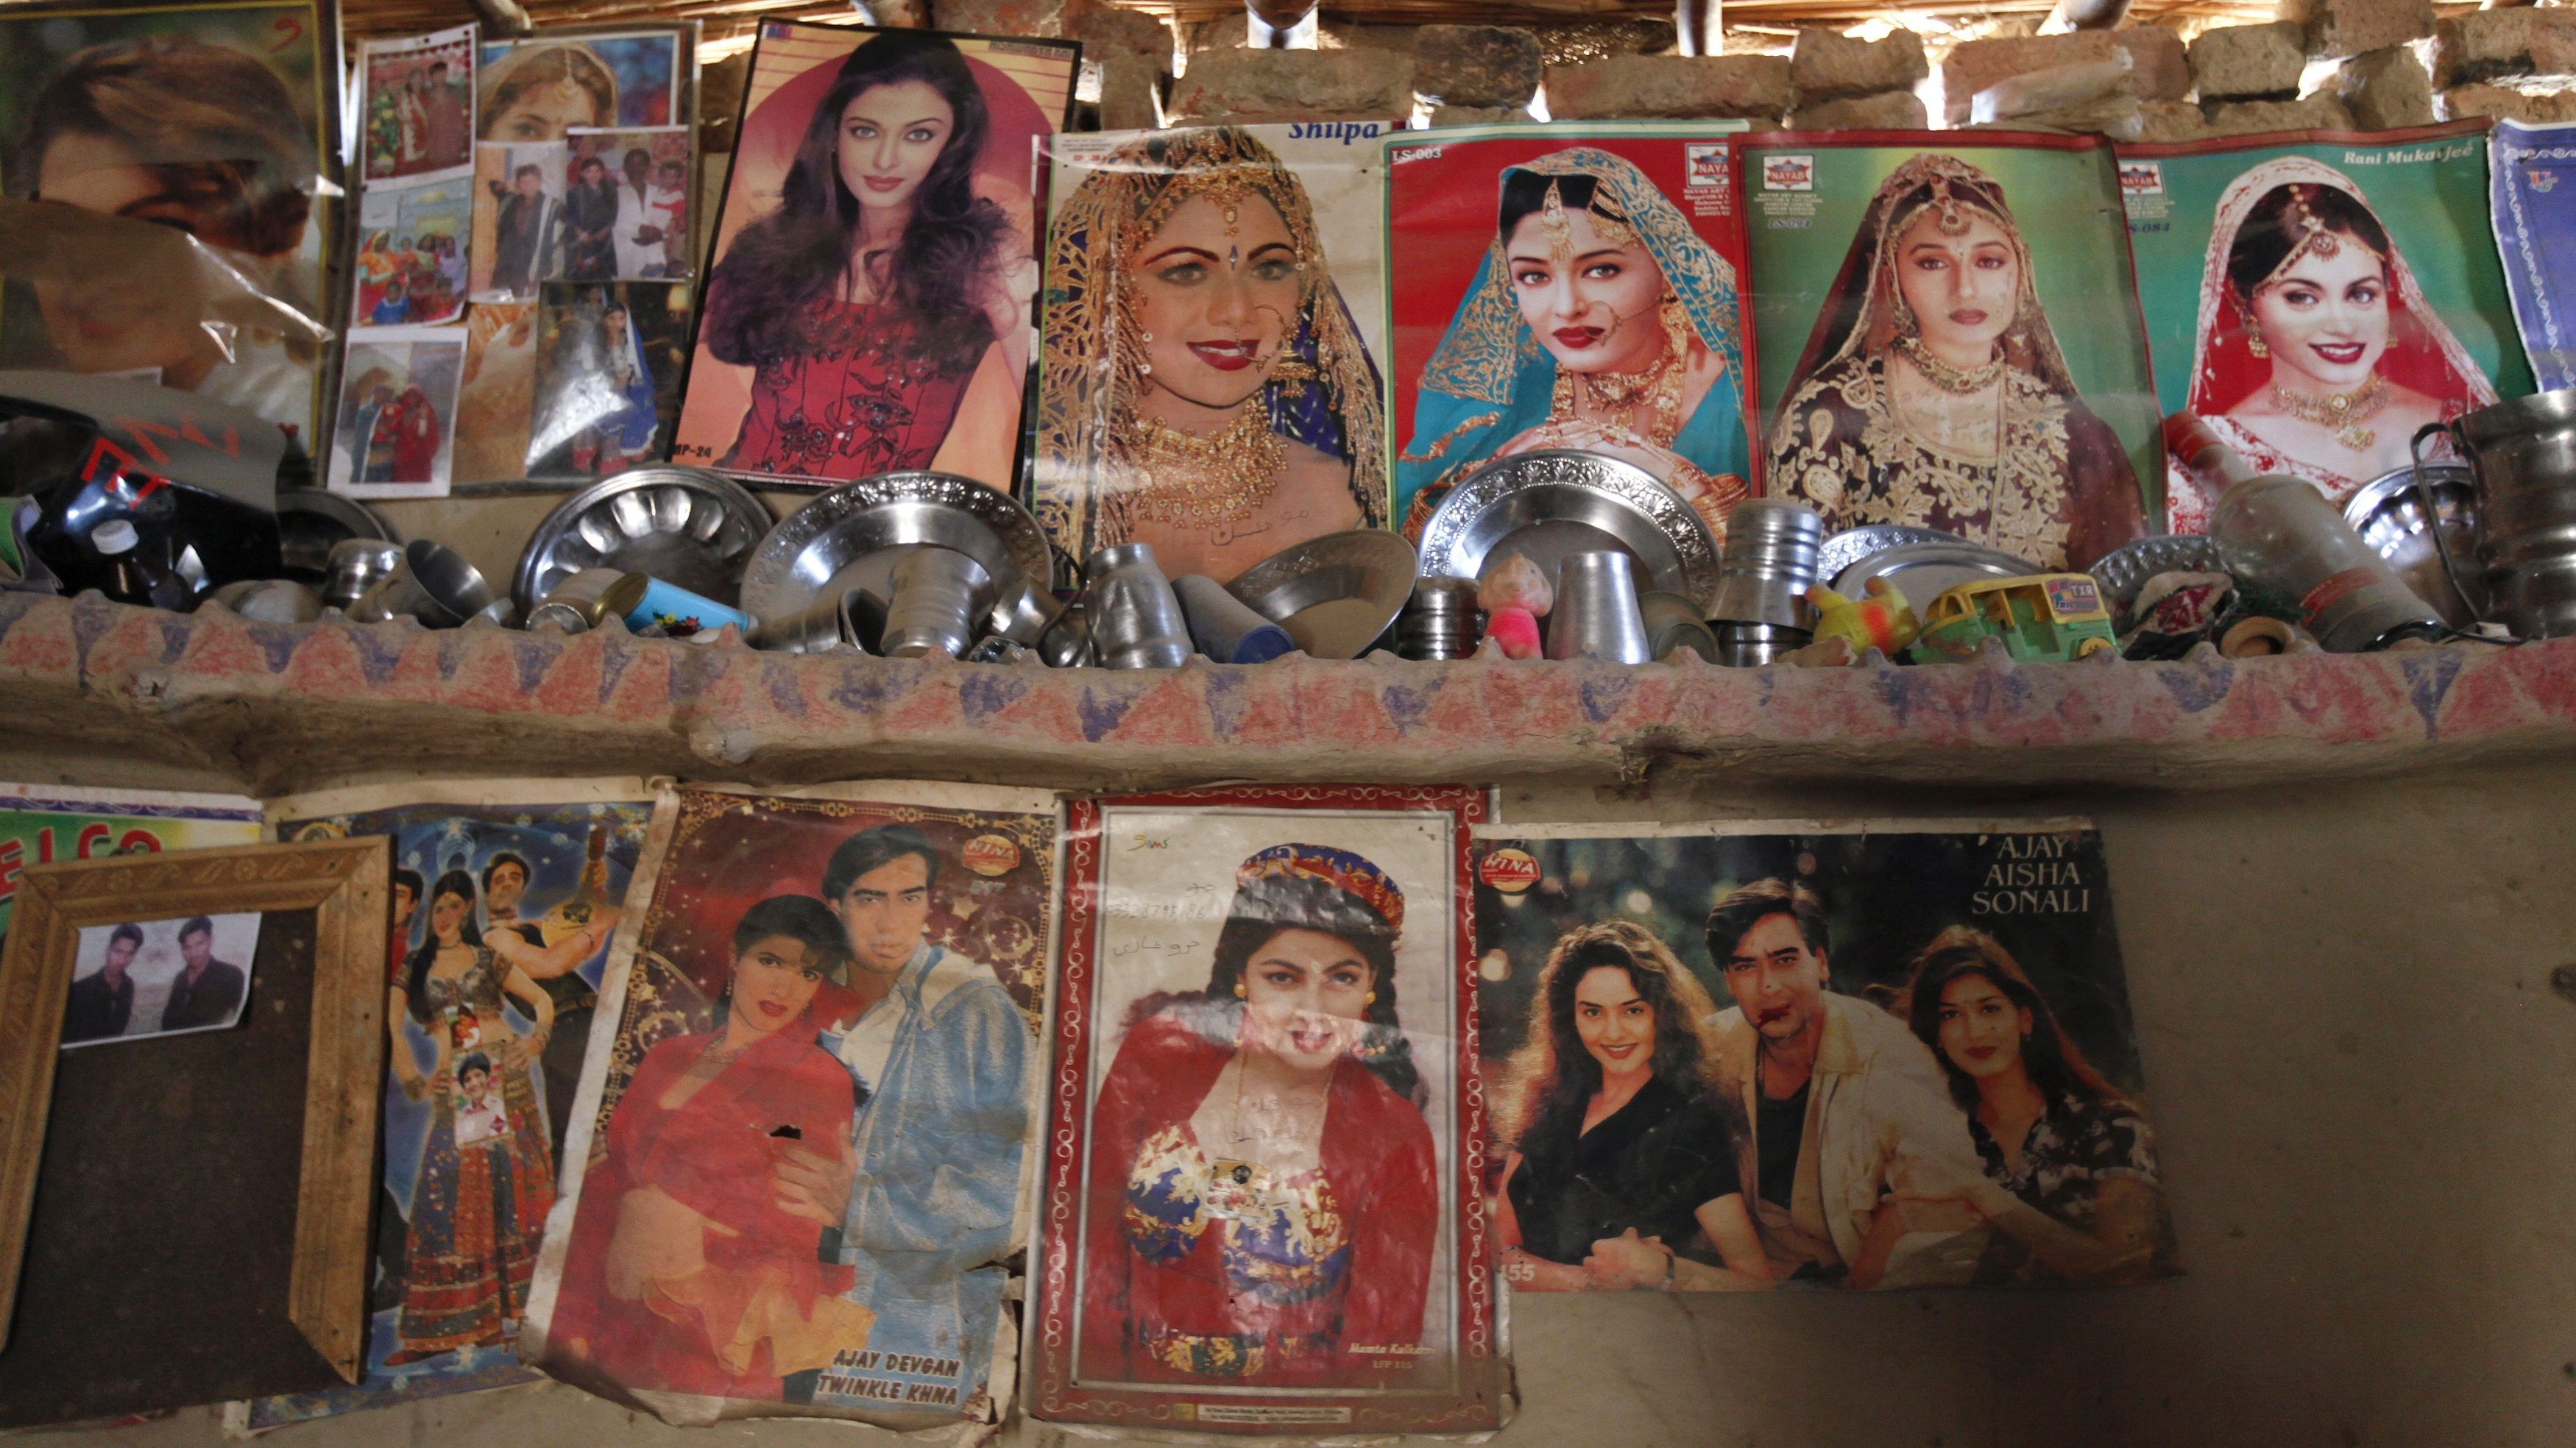 Utensils placed on a mud wall shelf adorned with Bollywood film star posters are seen in a room owned by a cotton picker's family in Meeran Pur village, north of Karachi November 23, 2014.  Women make up the bulk of Pakistan's half a million cotton producers, but labour rights activists say they are often exploited by overseers, who often withhold their wages and may subject some of them to sexual harassment. Many women work in Pakistan's cotton fields for less than $2 a day. Last year, a group of around 40 women decided their low wages could no longer cover food and clothing for their families so they did something almost unheard for poor working women in rural Pakistan - they went on strike.  REUTERS/Akhtar Soomro (PAKISTAN - Tags: AGRICULTURE BUSINESS COMMODITIES EMPLOYMENT SOCIETY POVERTY)   ATTENTION EDITORS: PICTURE 18 OF 27 FOR WIDER IMAGE PACKAGE 'UNITING PAKISTAN'S COTTON PICKERS'.   TO FIND ALL IMAGES SEARCH 'OVERSEERS SOOMRO' - LM2EAC315F201